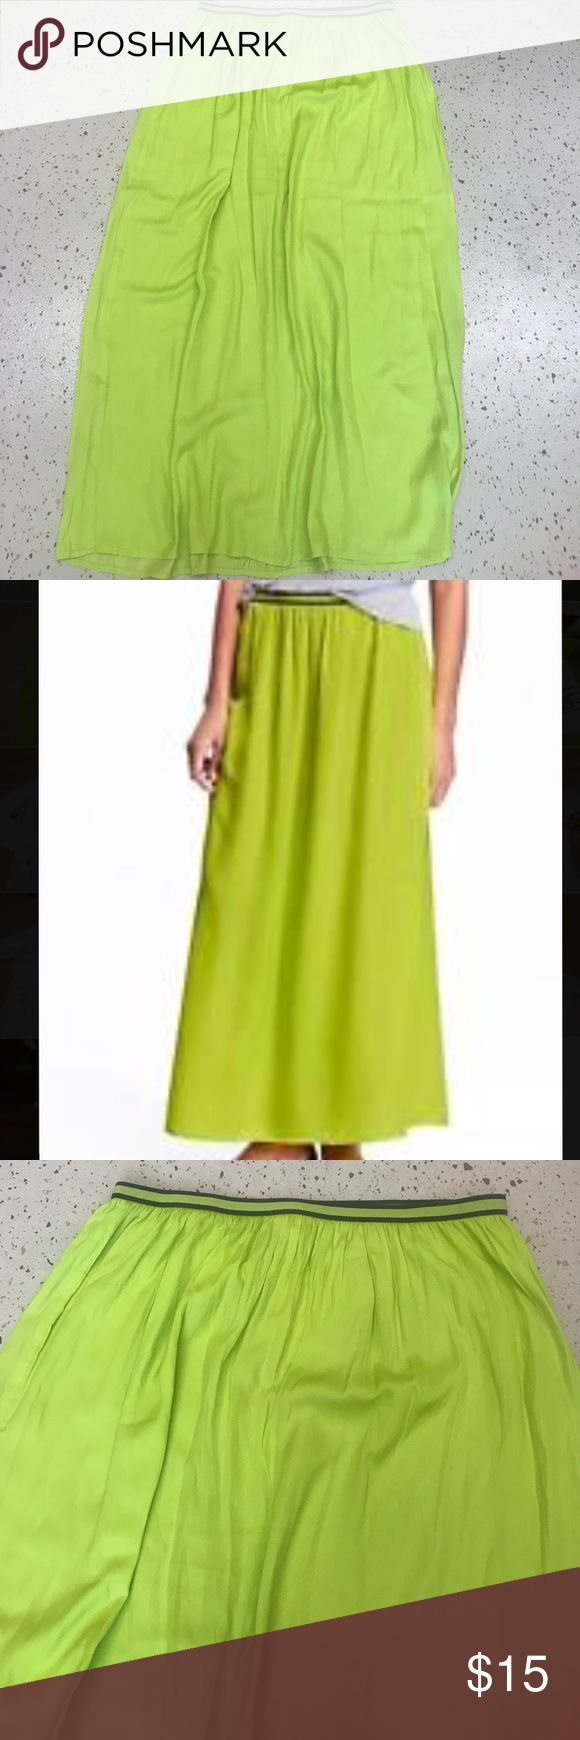 Old Navy Maxi Skirt Medium Neon Green Worn once! Like new condition. Sheer material so I wore a slip underneath. Perfect lightweight and cool. Waist is stretchy.  Looks great for summer or fall! Old Navy Skirts Maxi